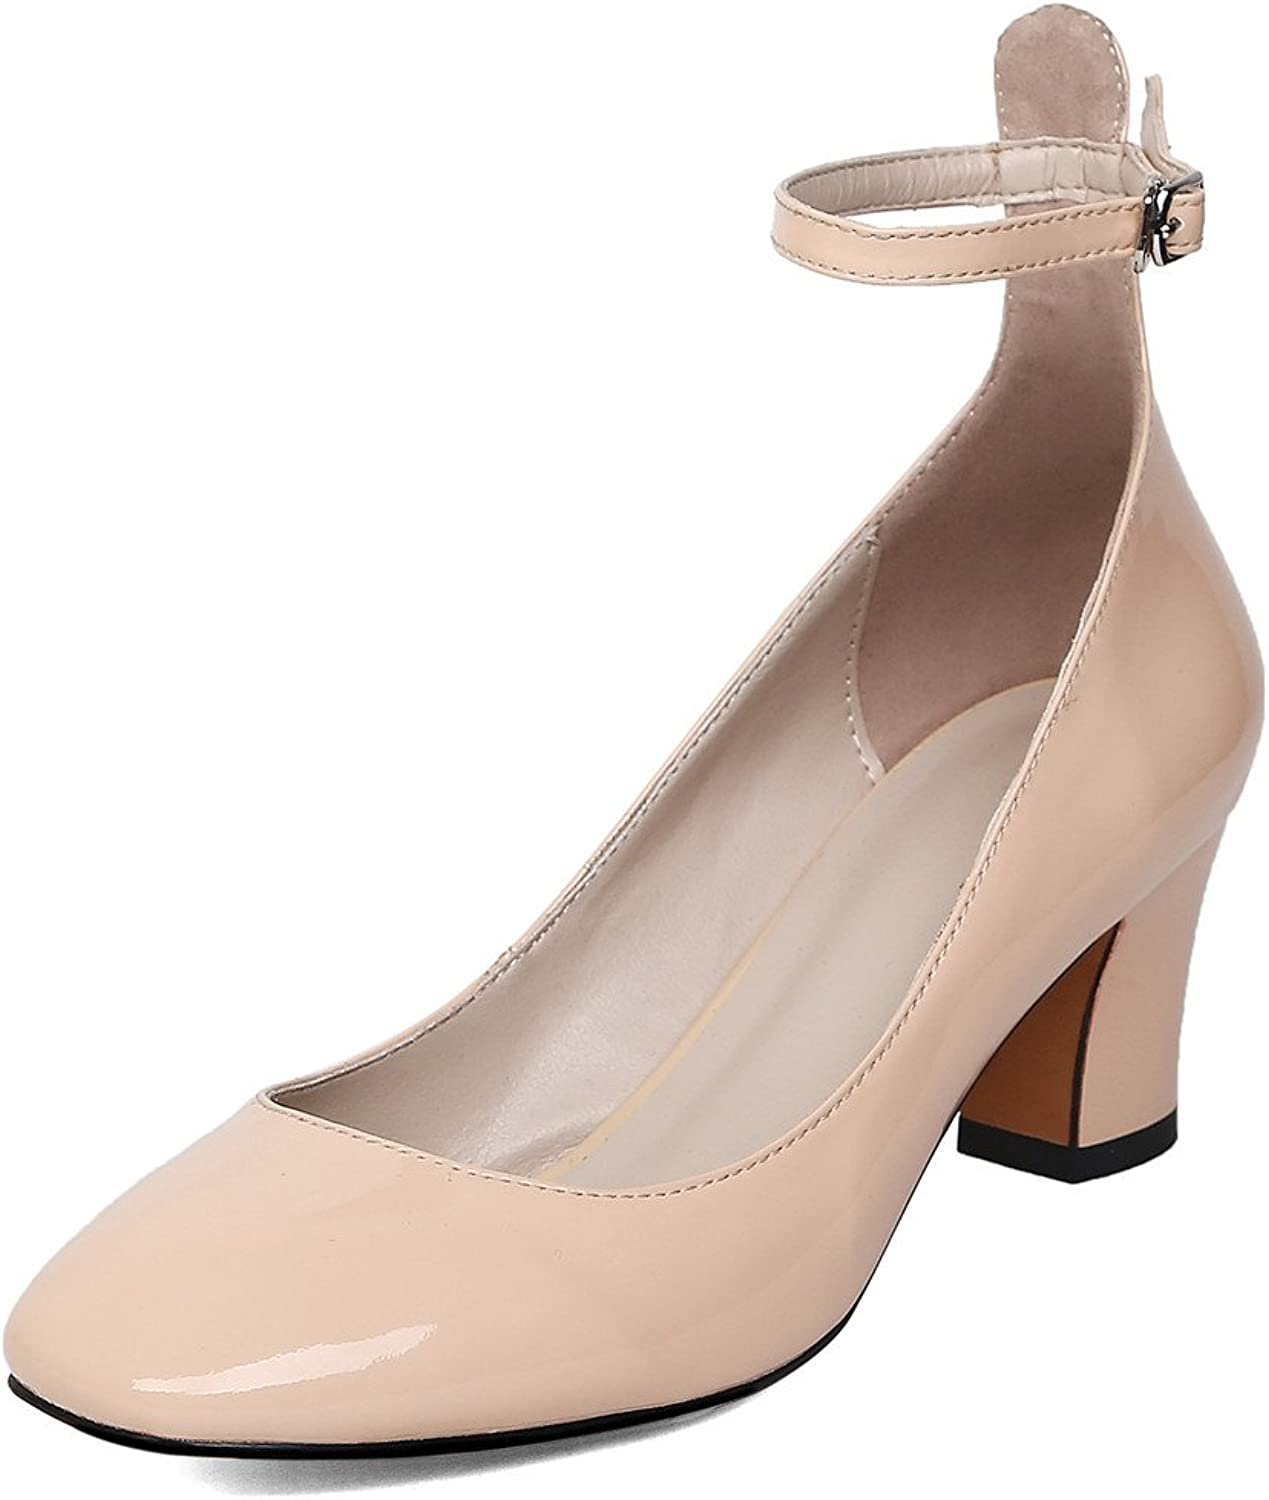 Nine Seven Patent Leather Women's Square Toe Chunky Heel Ankle-Strap Handmade Pump